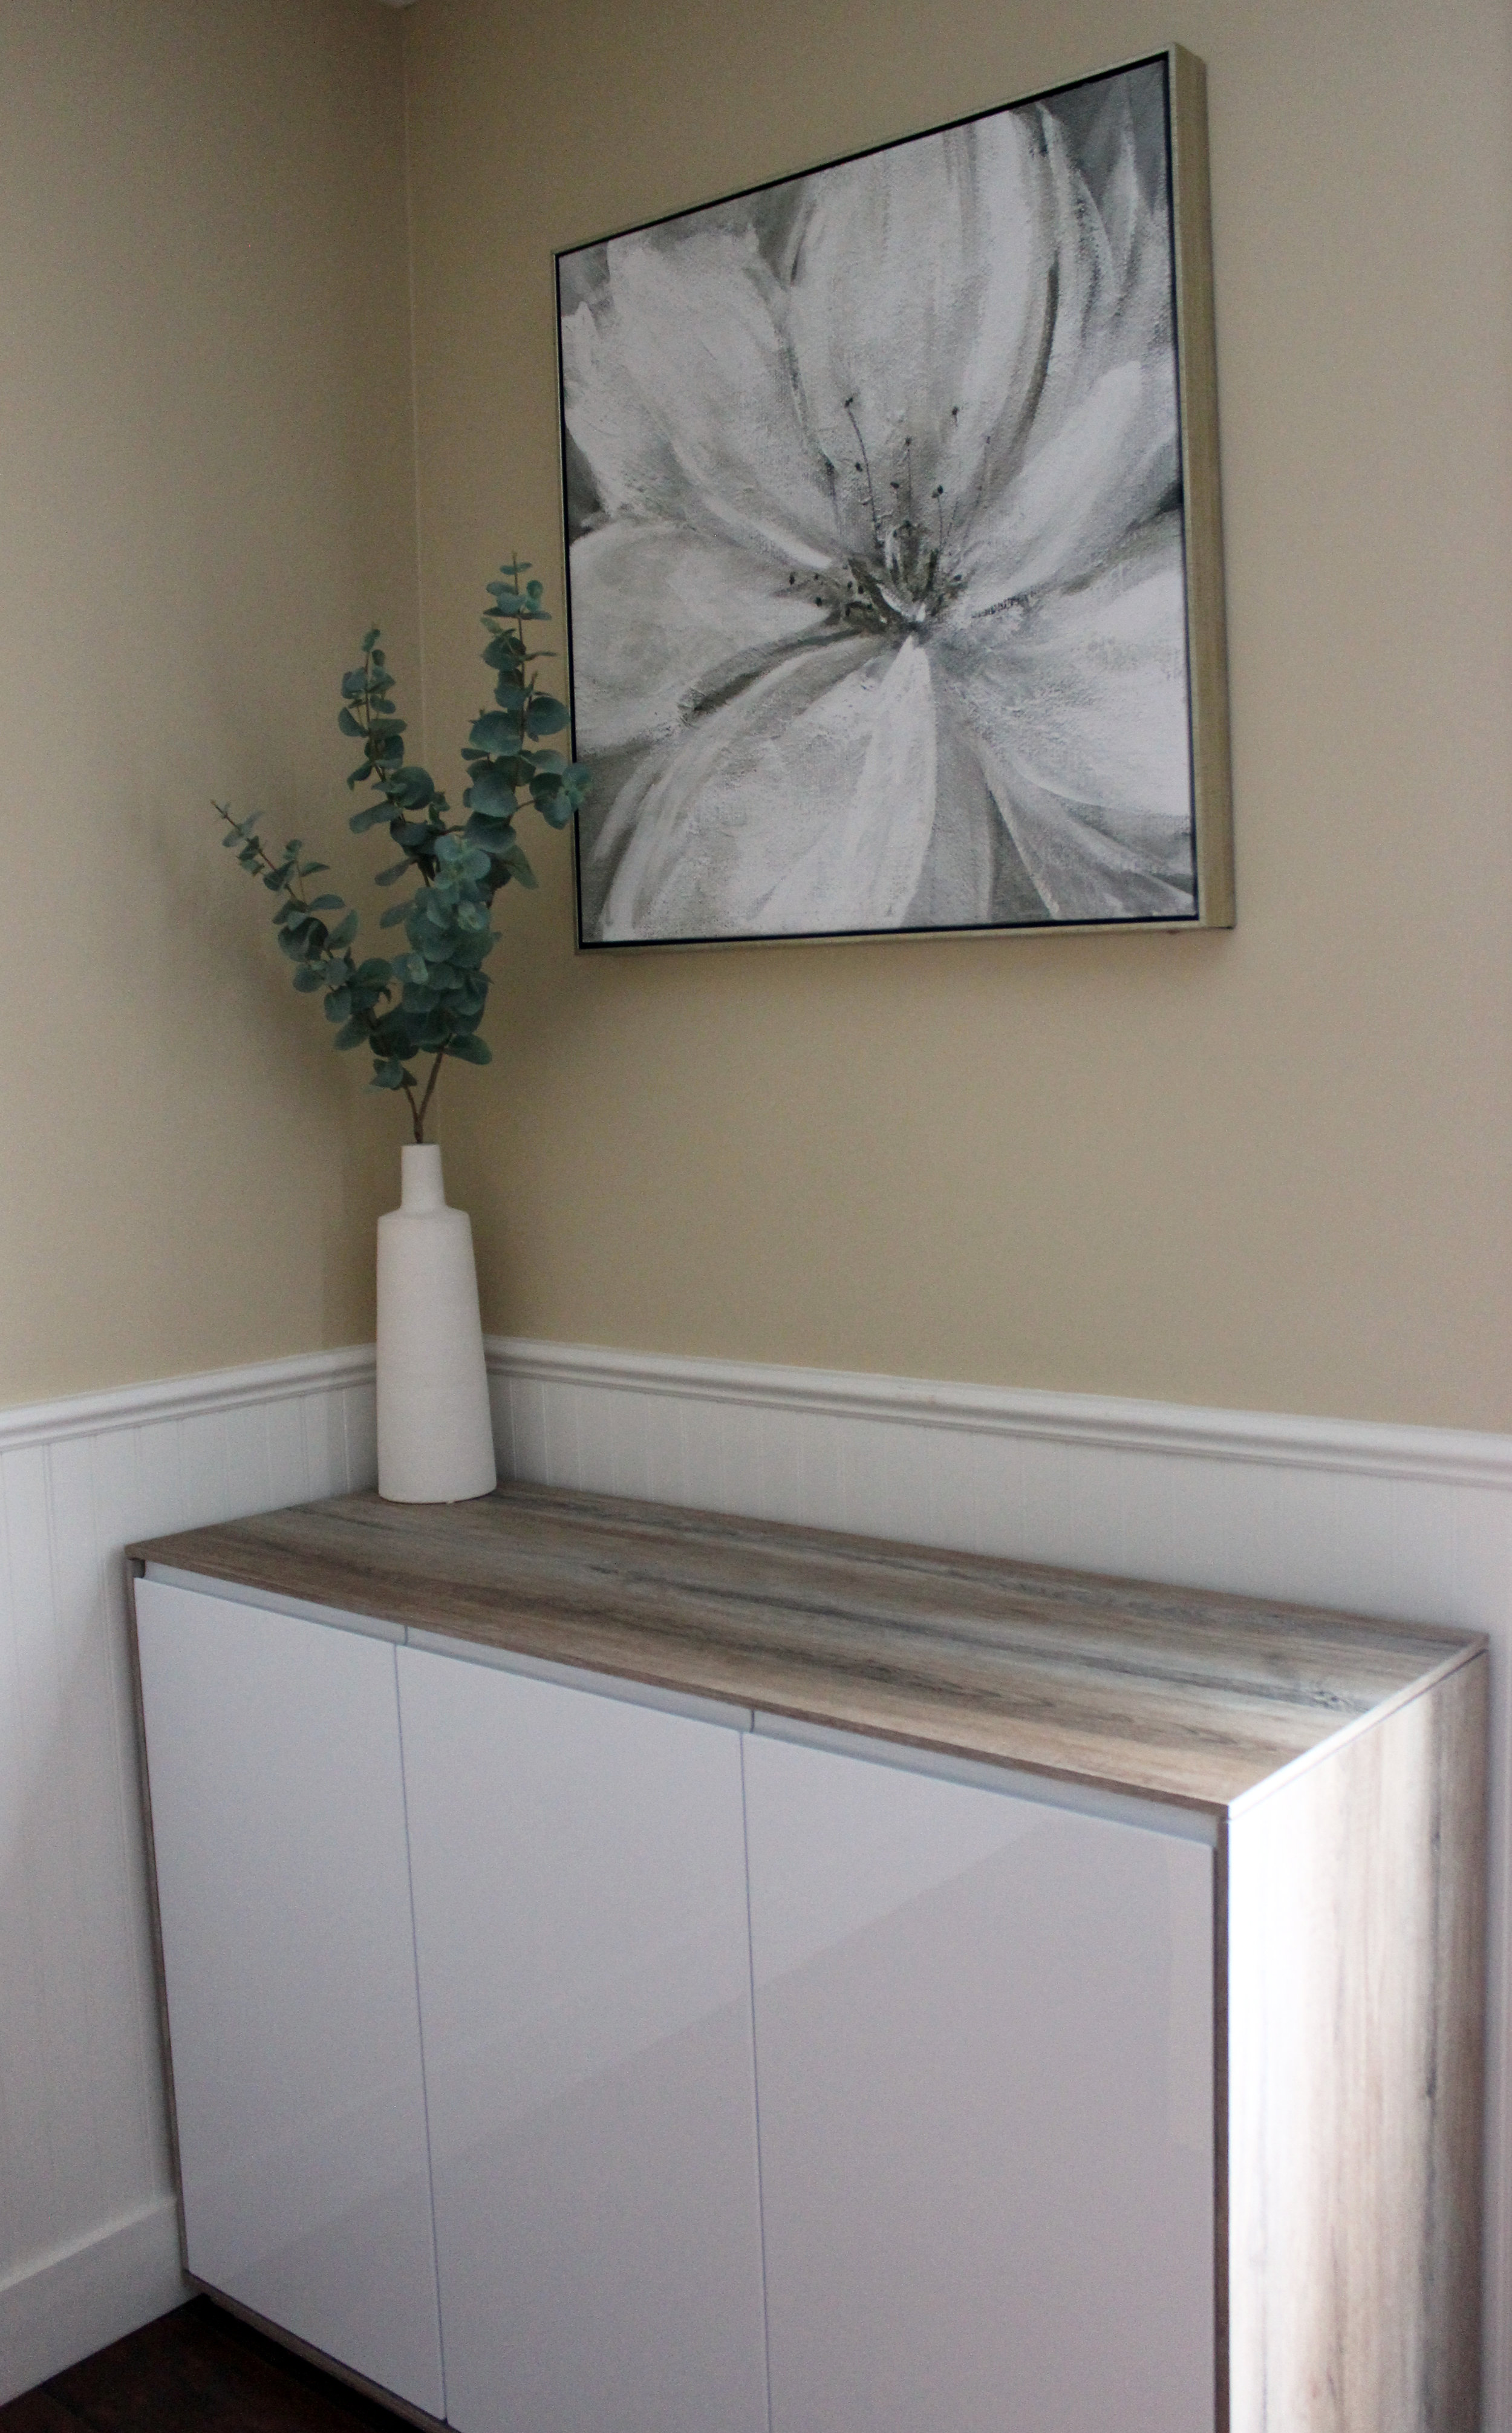 Contemporary sideboard with art & decor